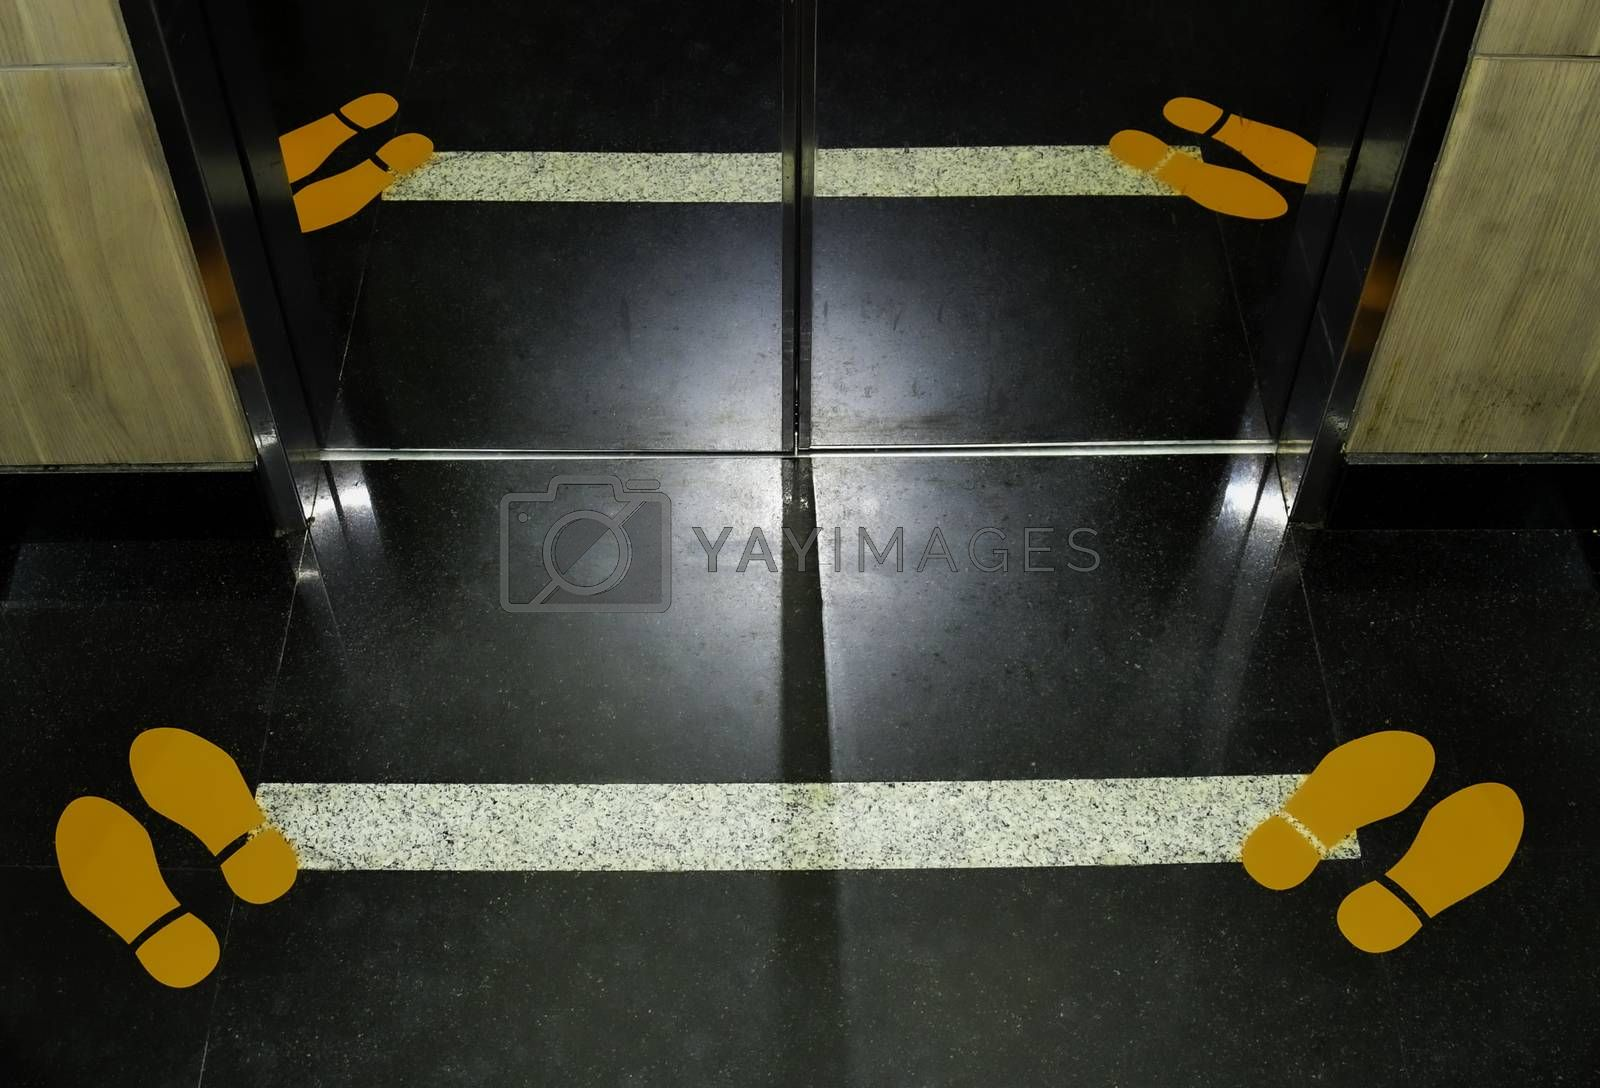 Footprint signage showing social distancing measures on the floor of an elevator.